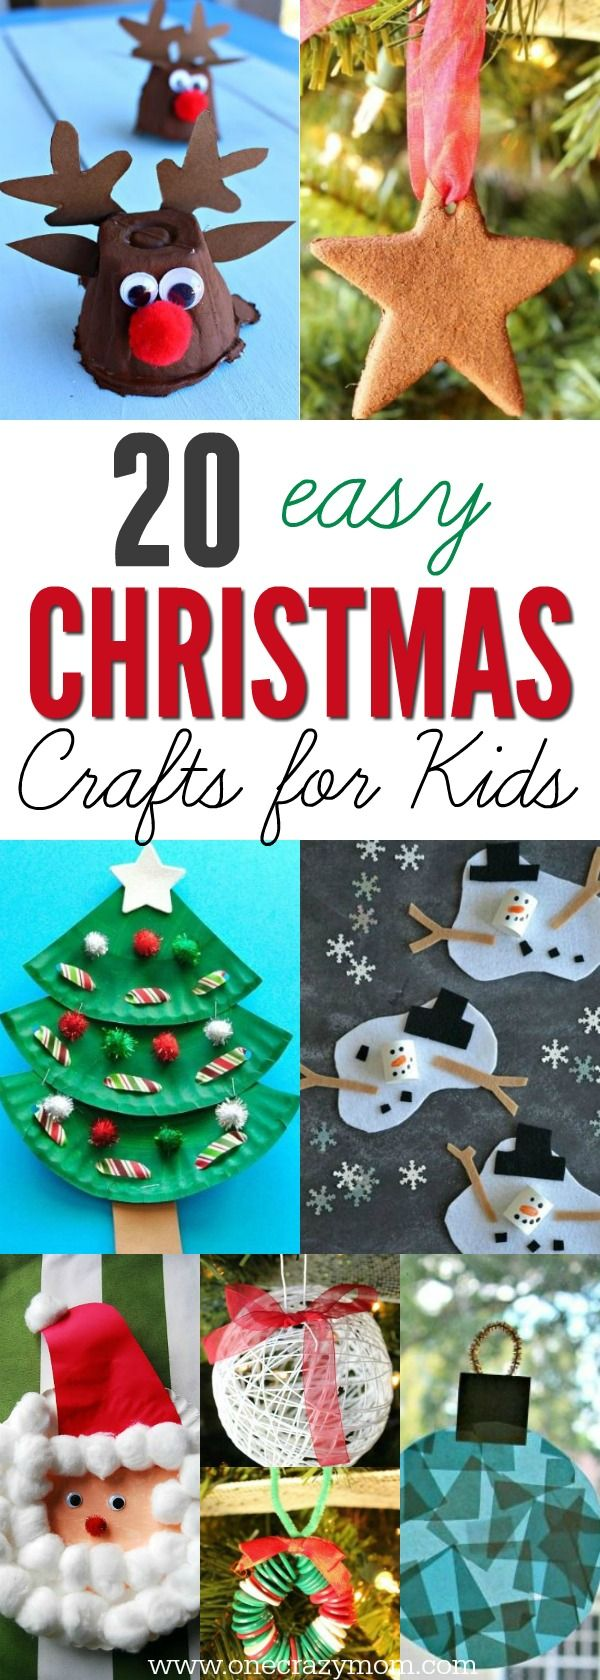 find easy christmas crafts for kids including preschool christmas craftsthey will love these holiday